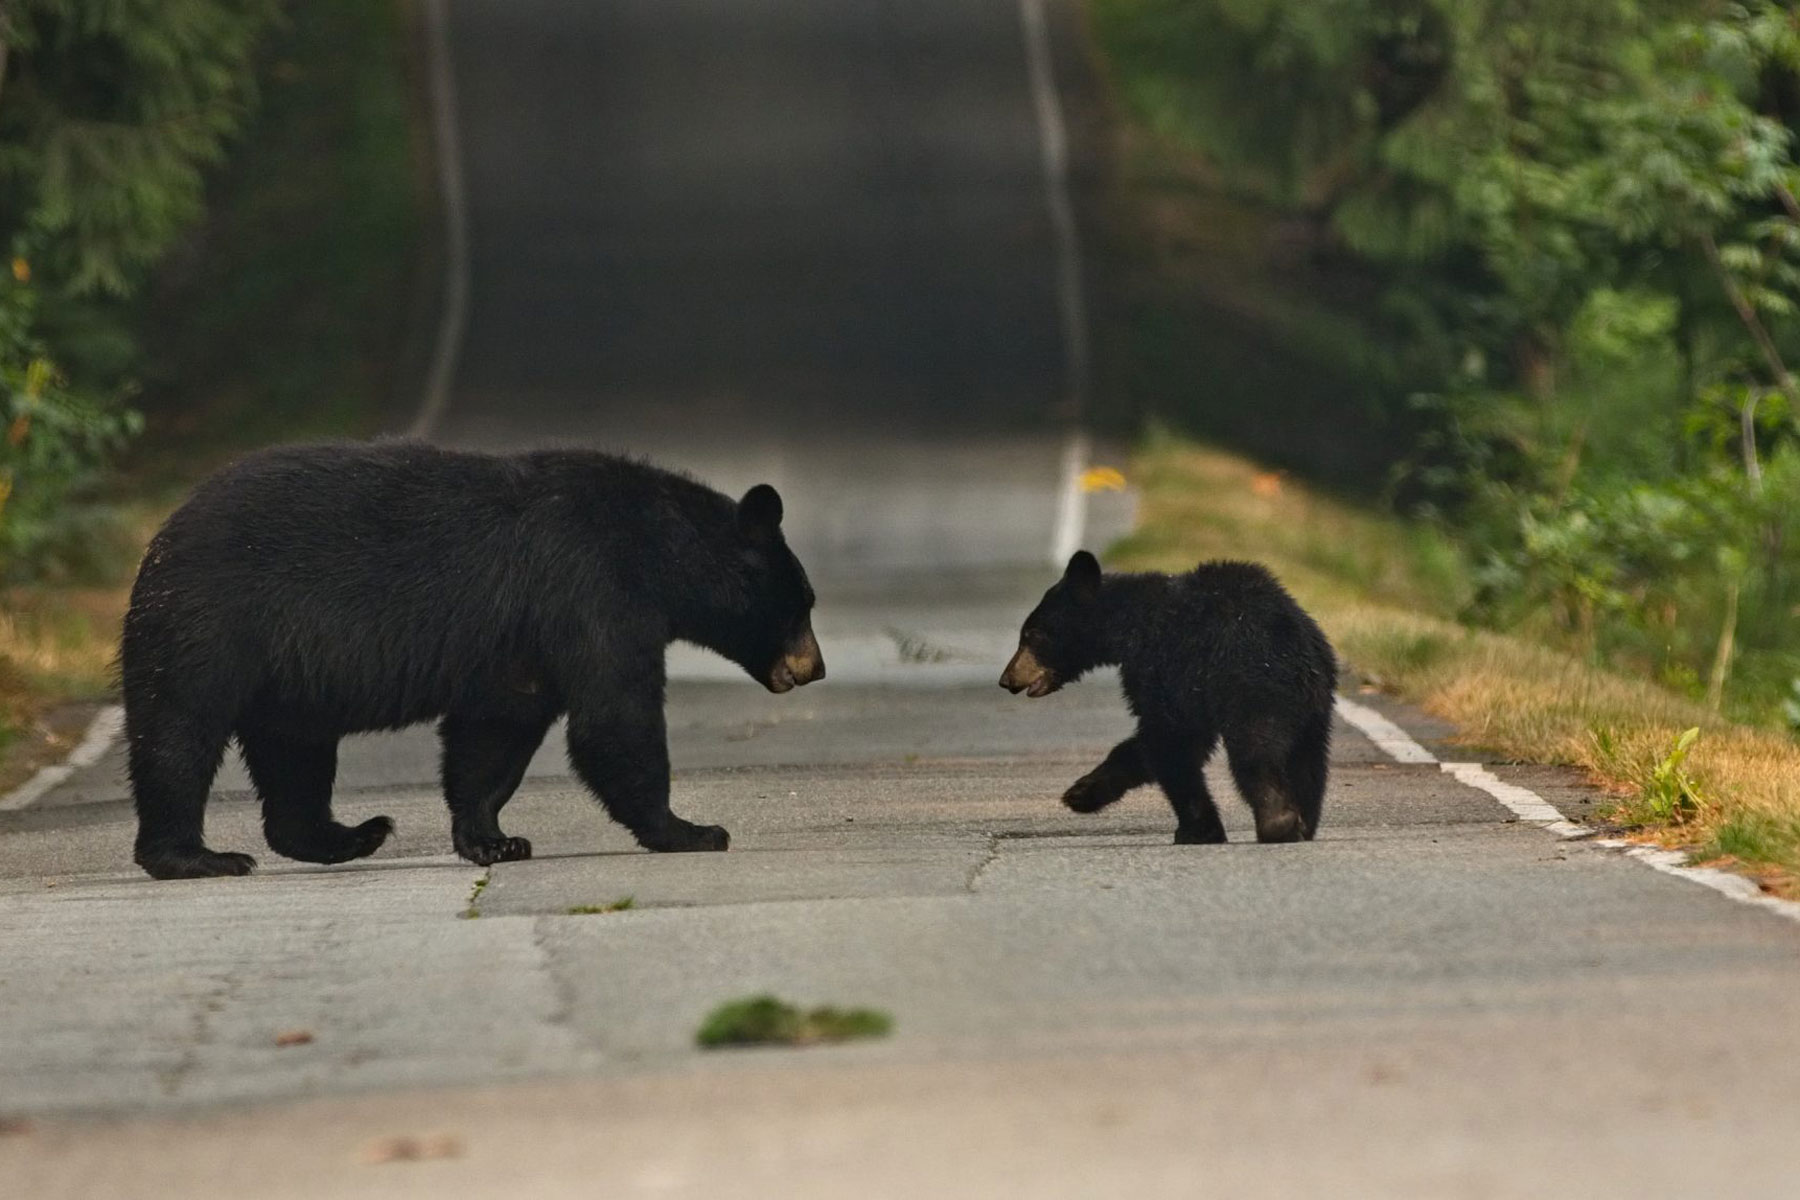 black bears standing in the road